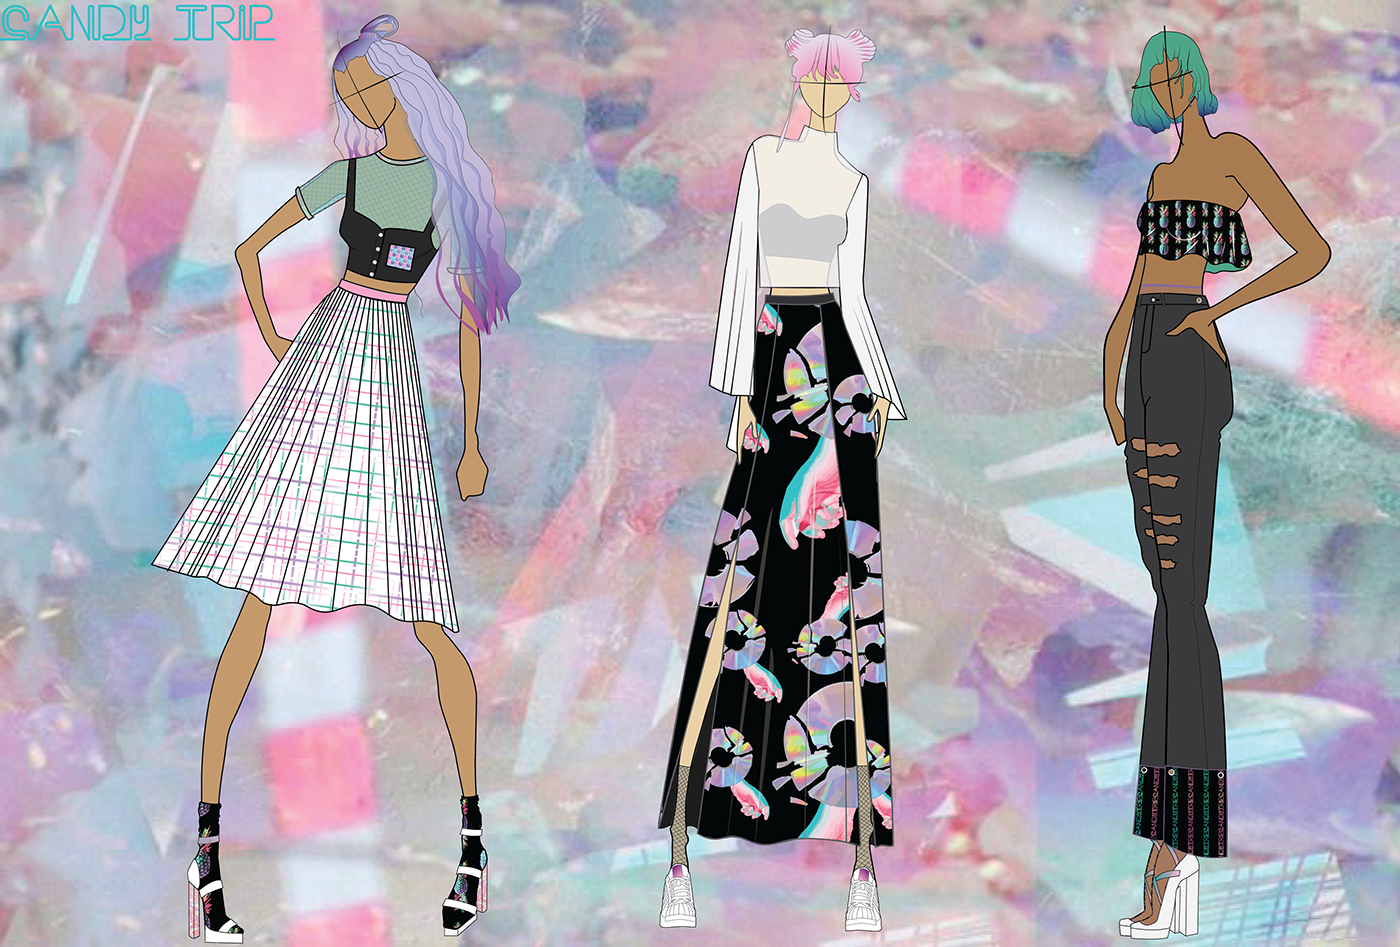 Candy Trip Cad For Fashion Design Final Project On Behance